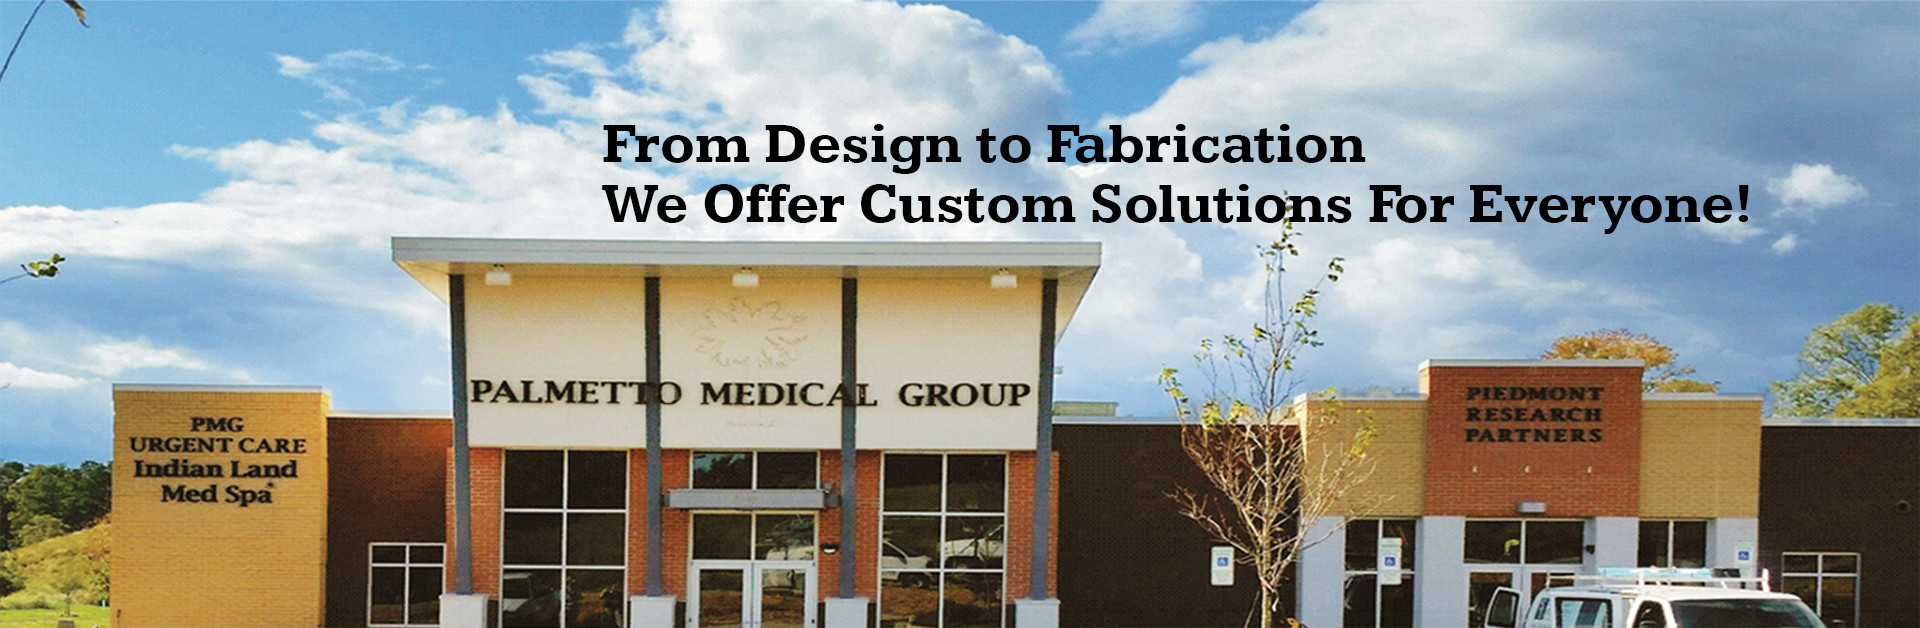 From Design to Fabrication We Offer Custom Solutions for Everyone